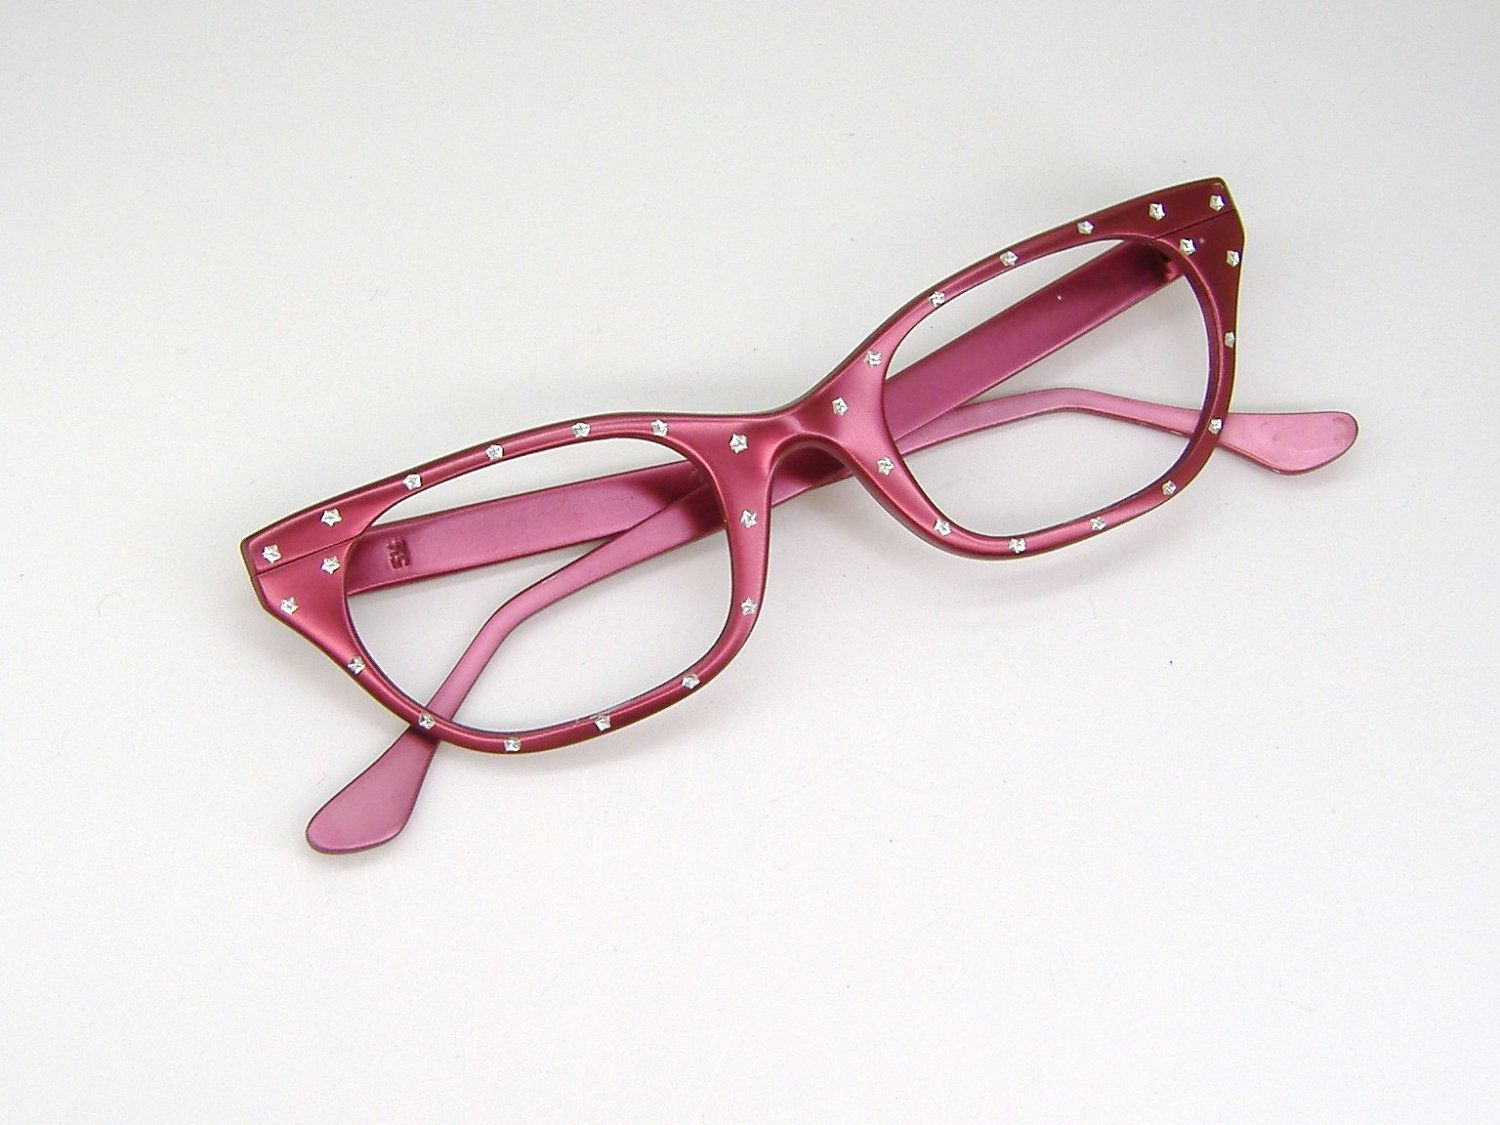 Vintage 50s Hot Pink Cat Eye Eyeglasses Sunglasses Frame | Frames ...